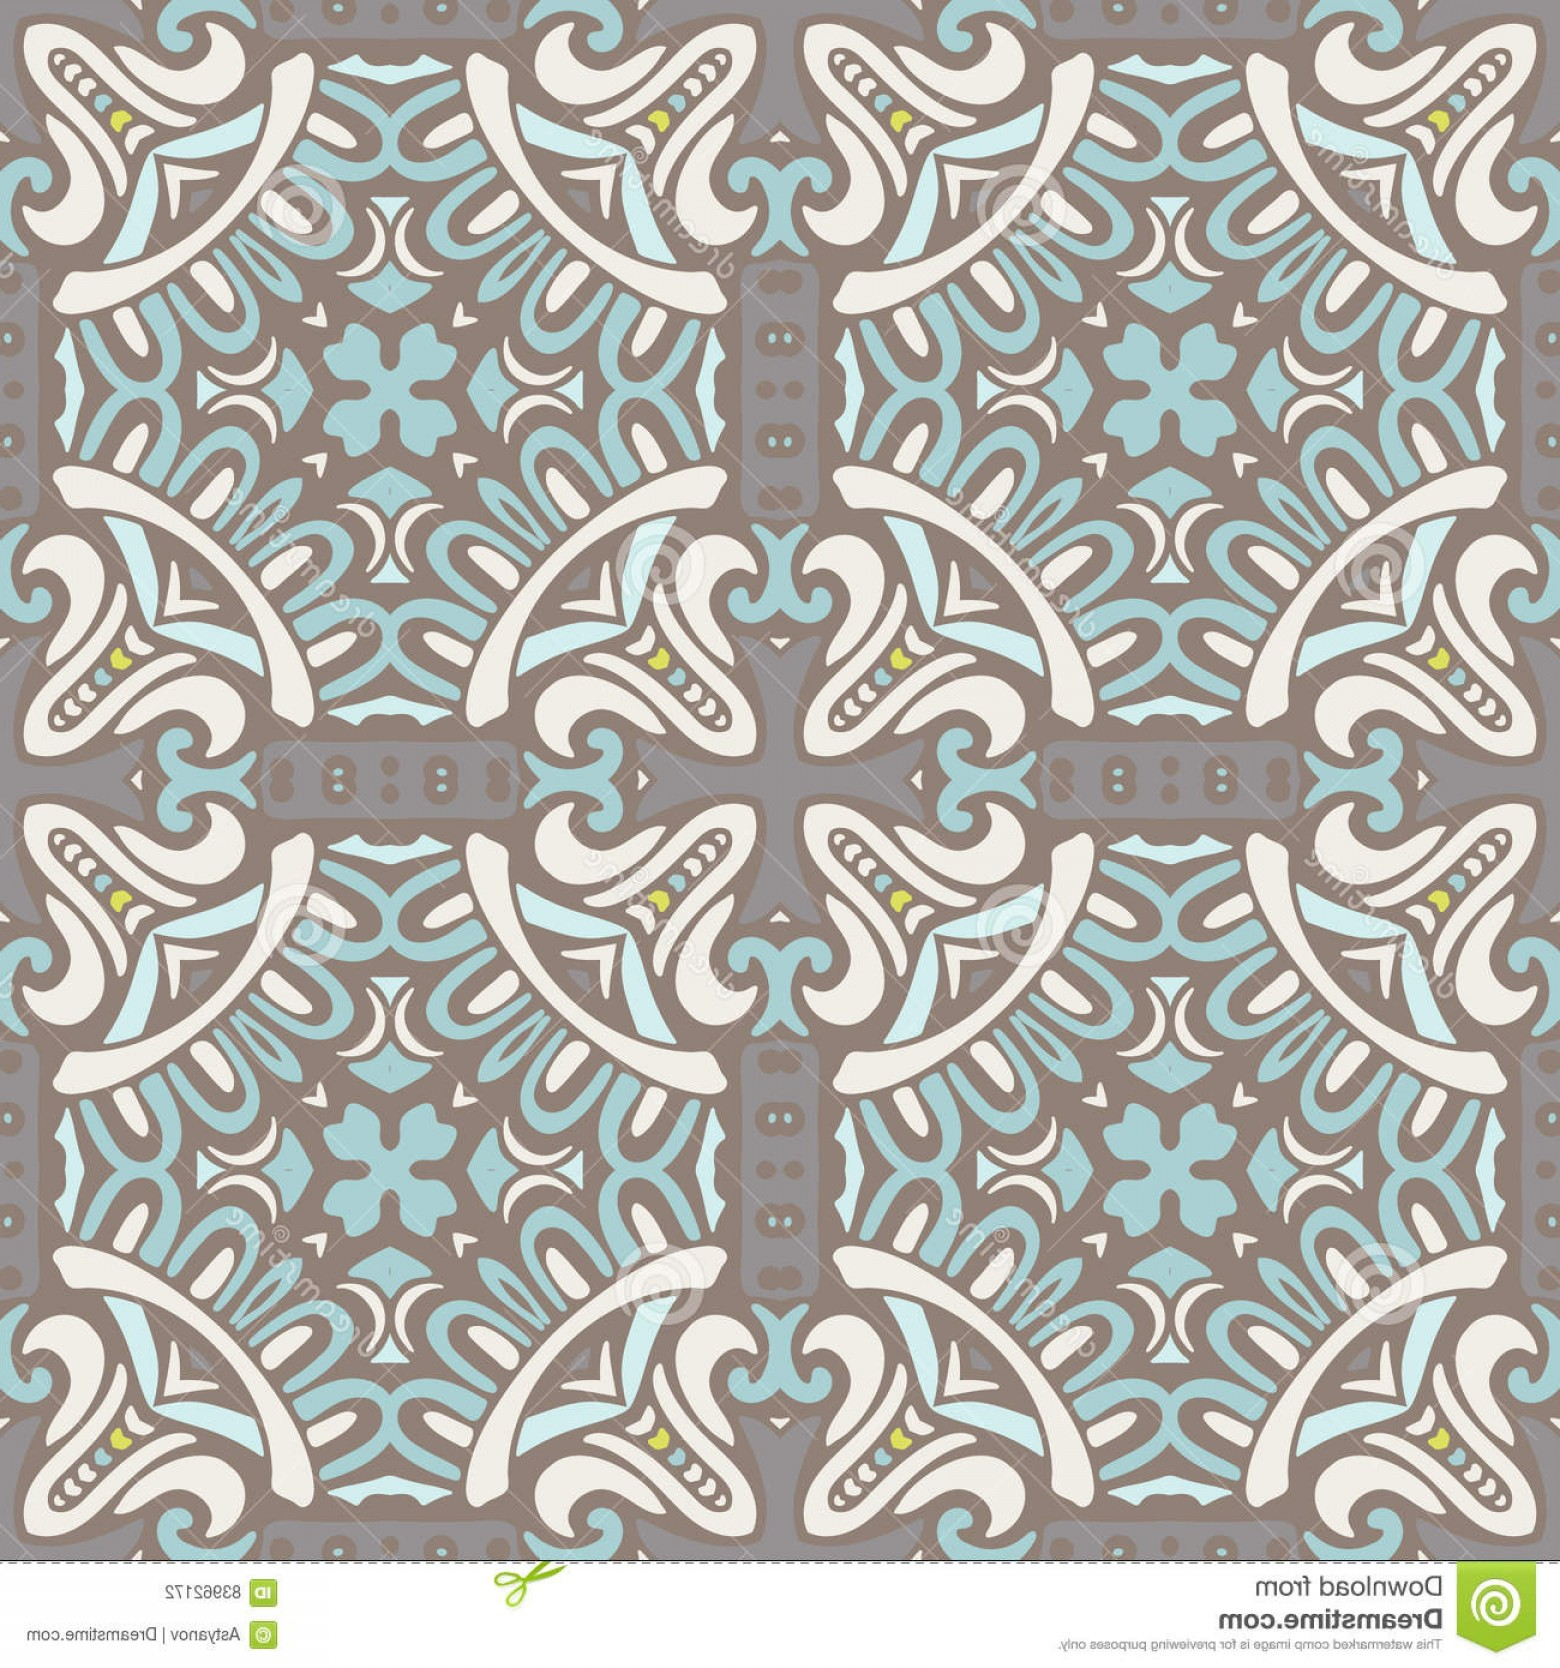 Aqua Victorian Medallions Vectors: Stock Illustration Luxury Ornamental Classical Tile Vector Pattern Abstract Seamless Vintage Fabric Wallpaper Image